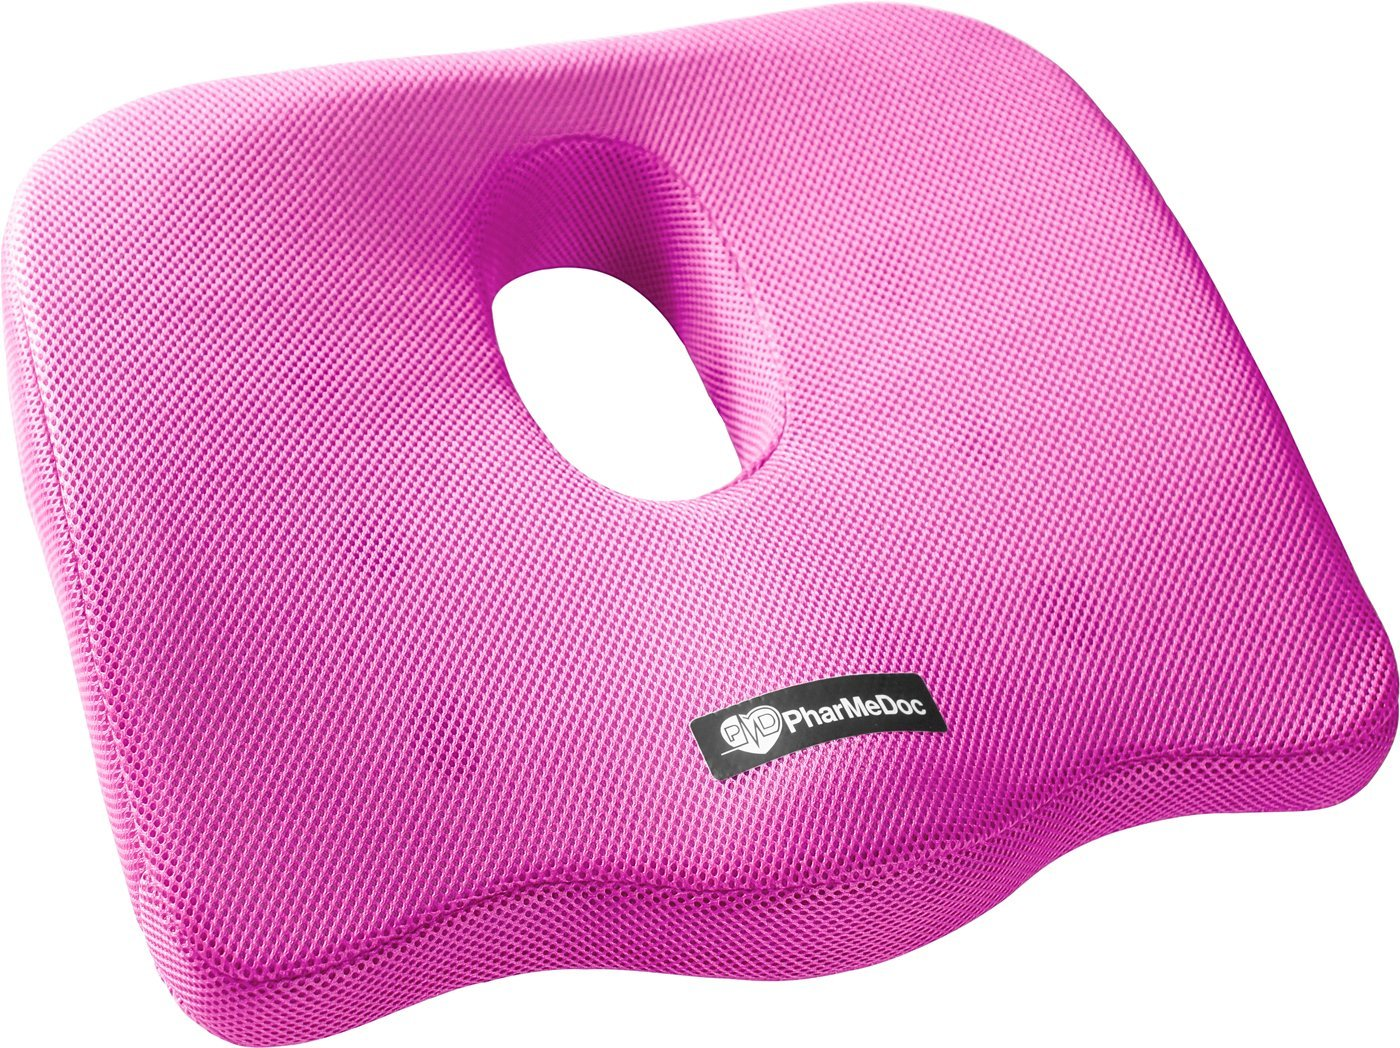 PharMeDoc Coccyx Cushion for Pain Management